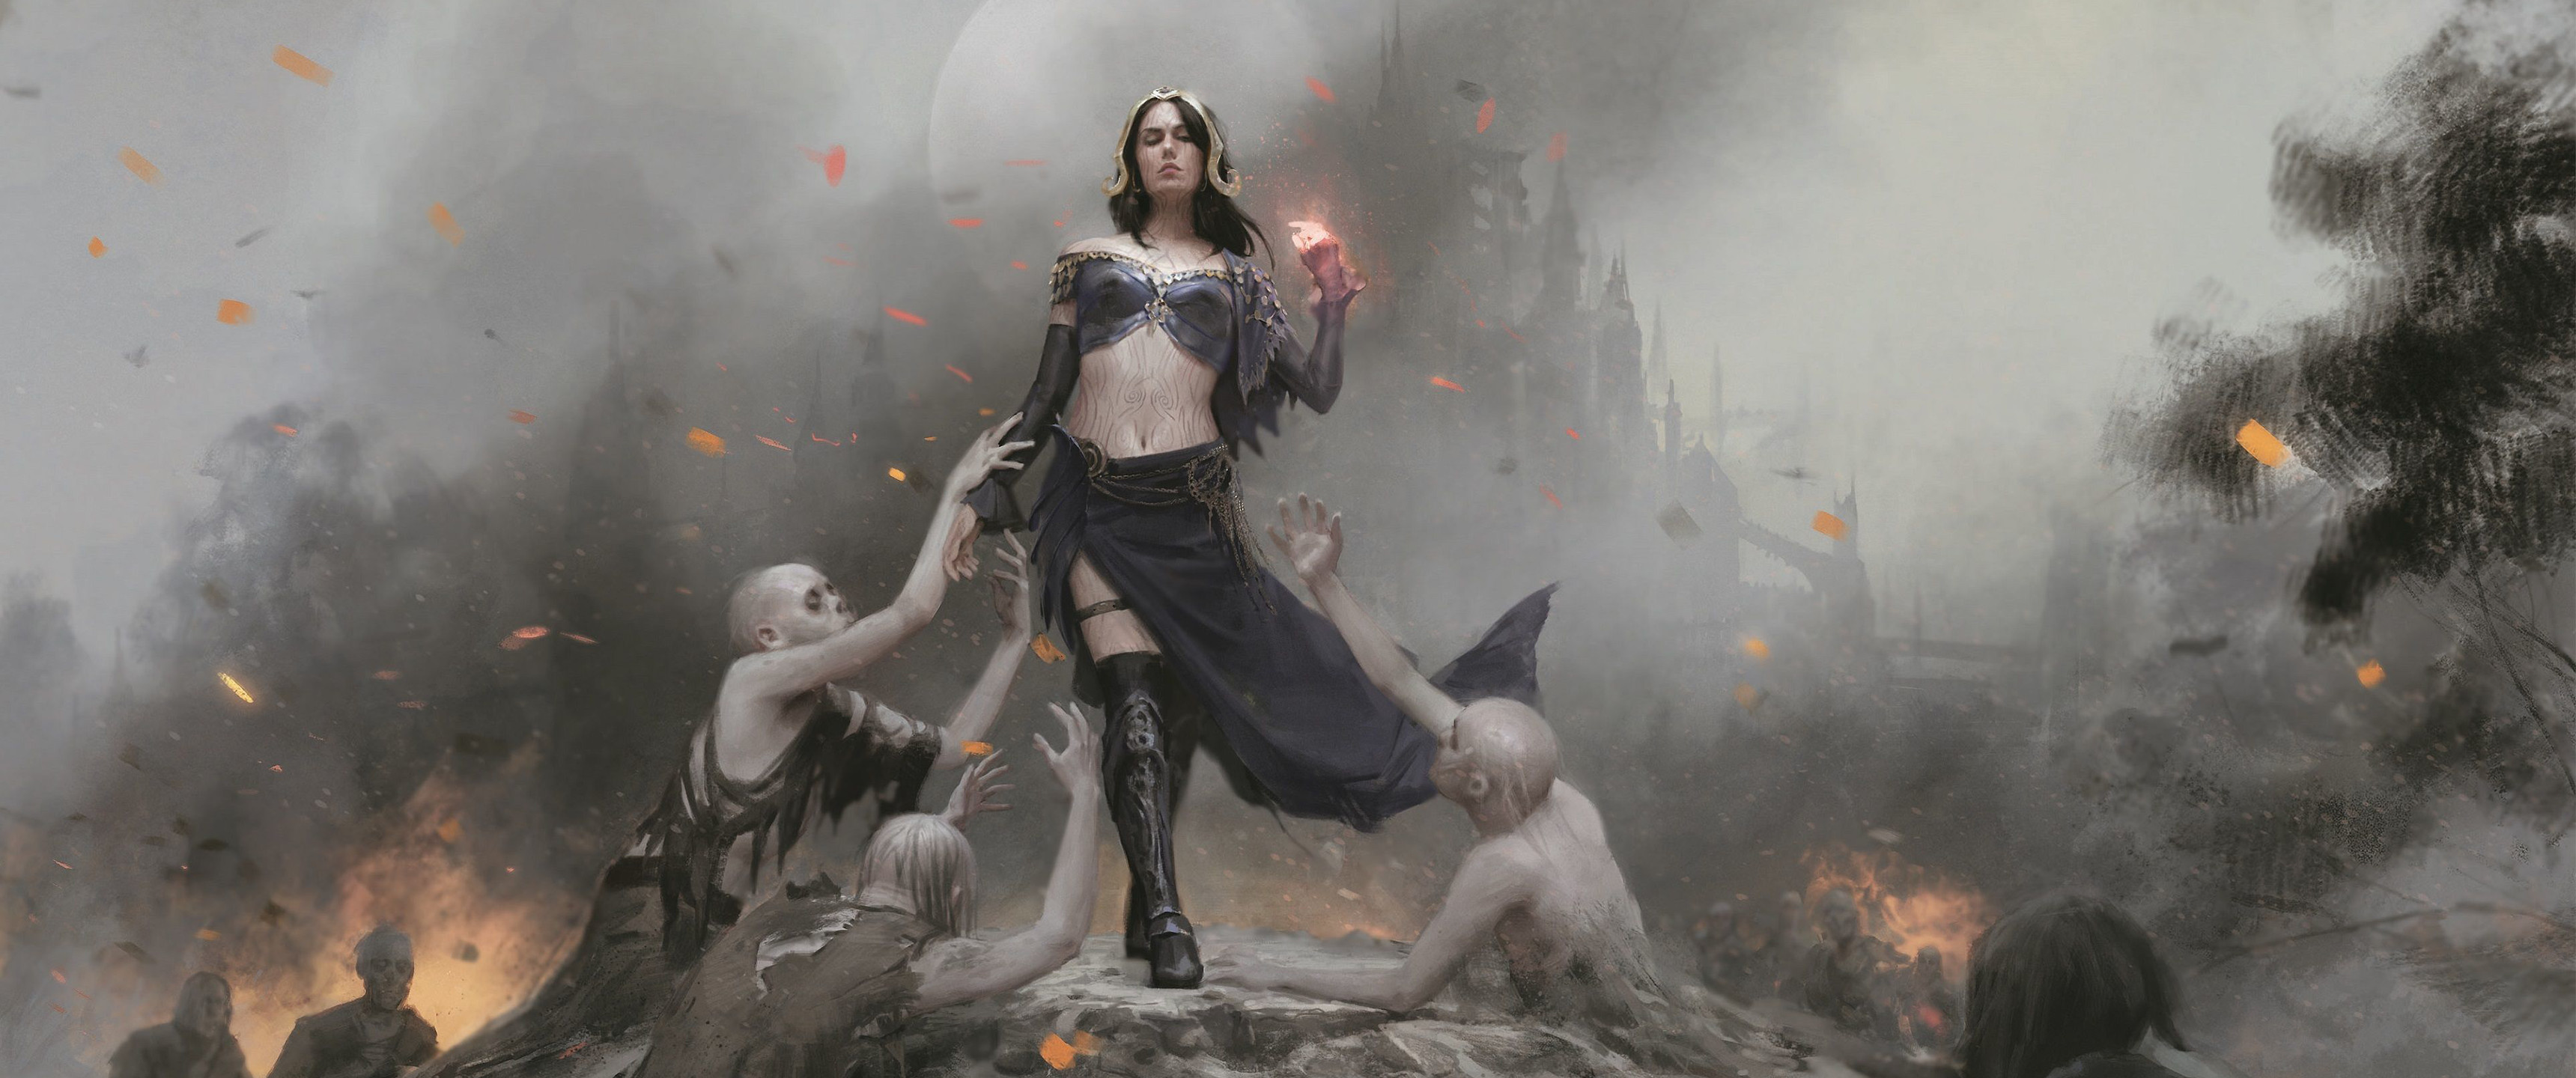 Here is a 3440x1440p wallpaper collection of MTG card art that I put  together :)